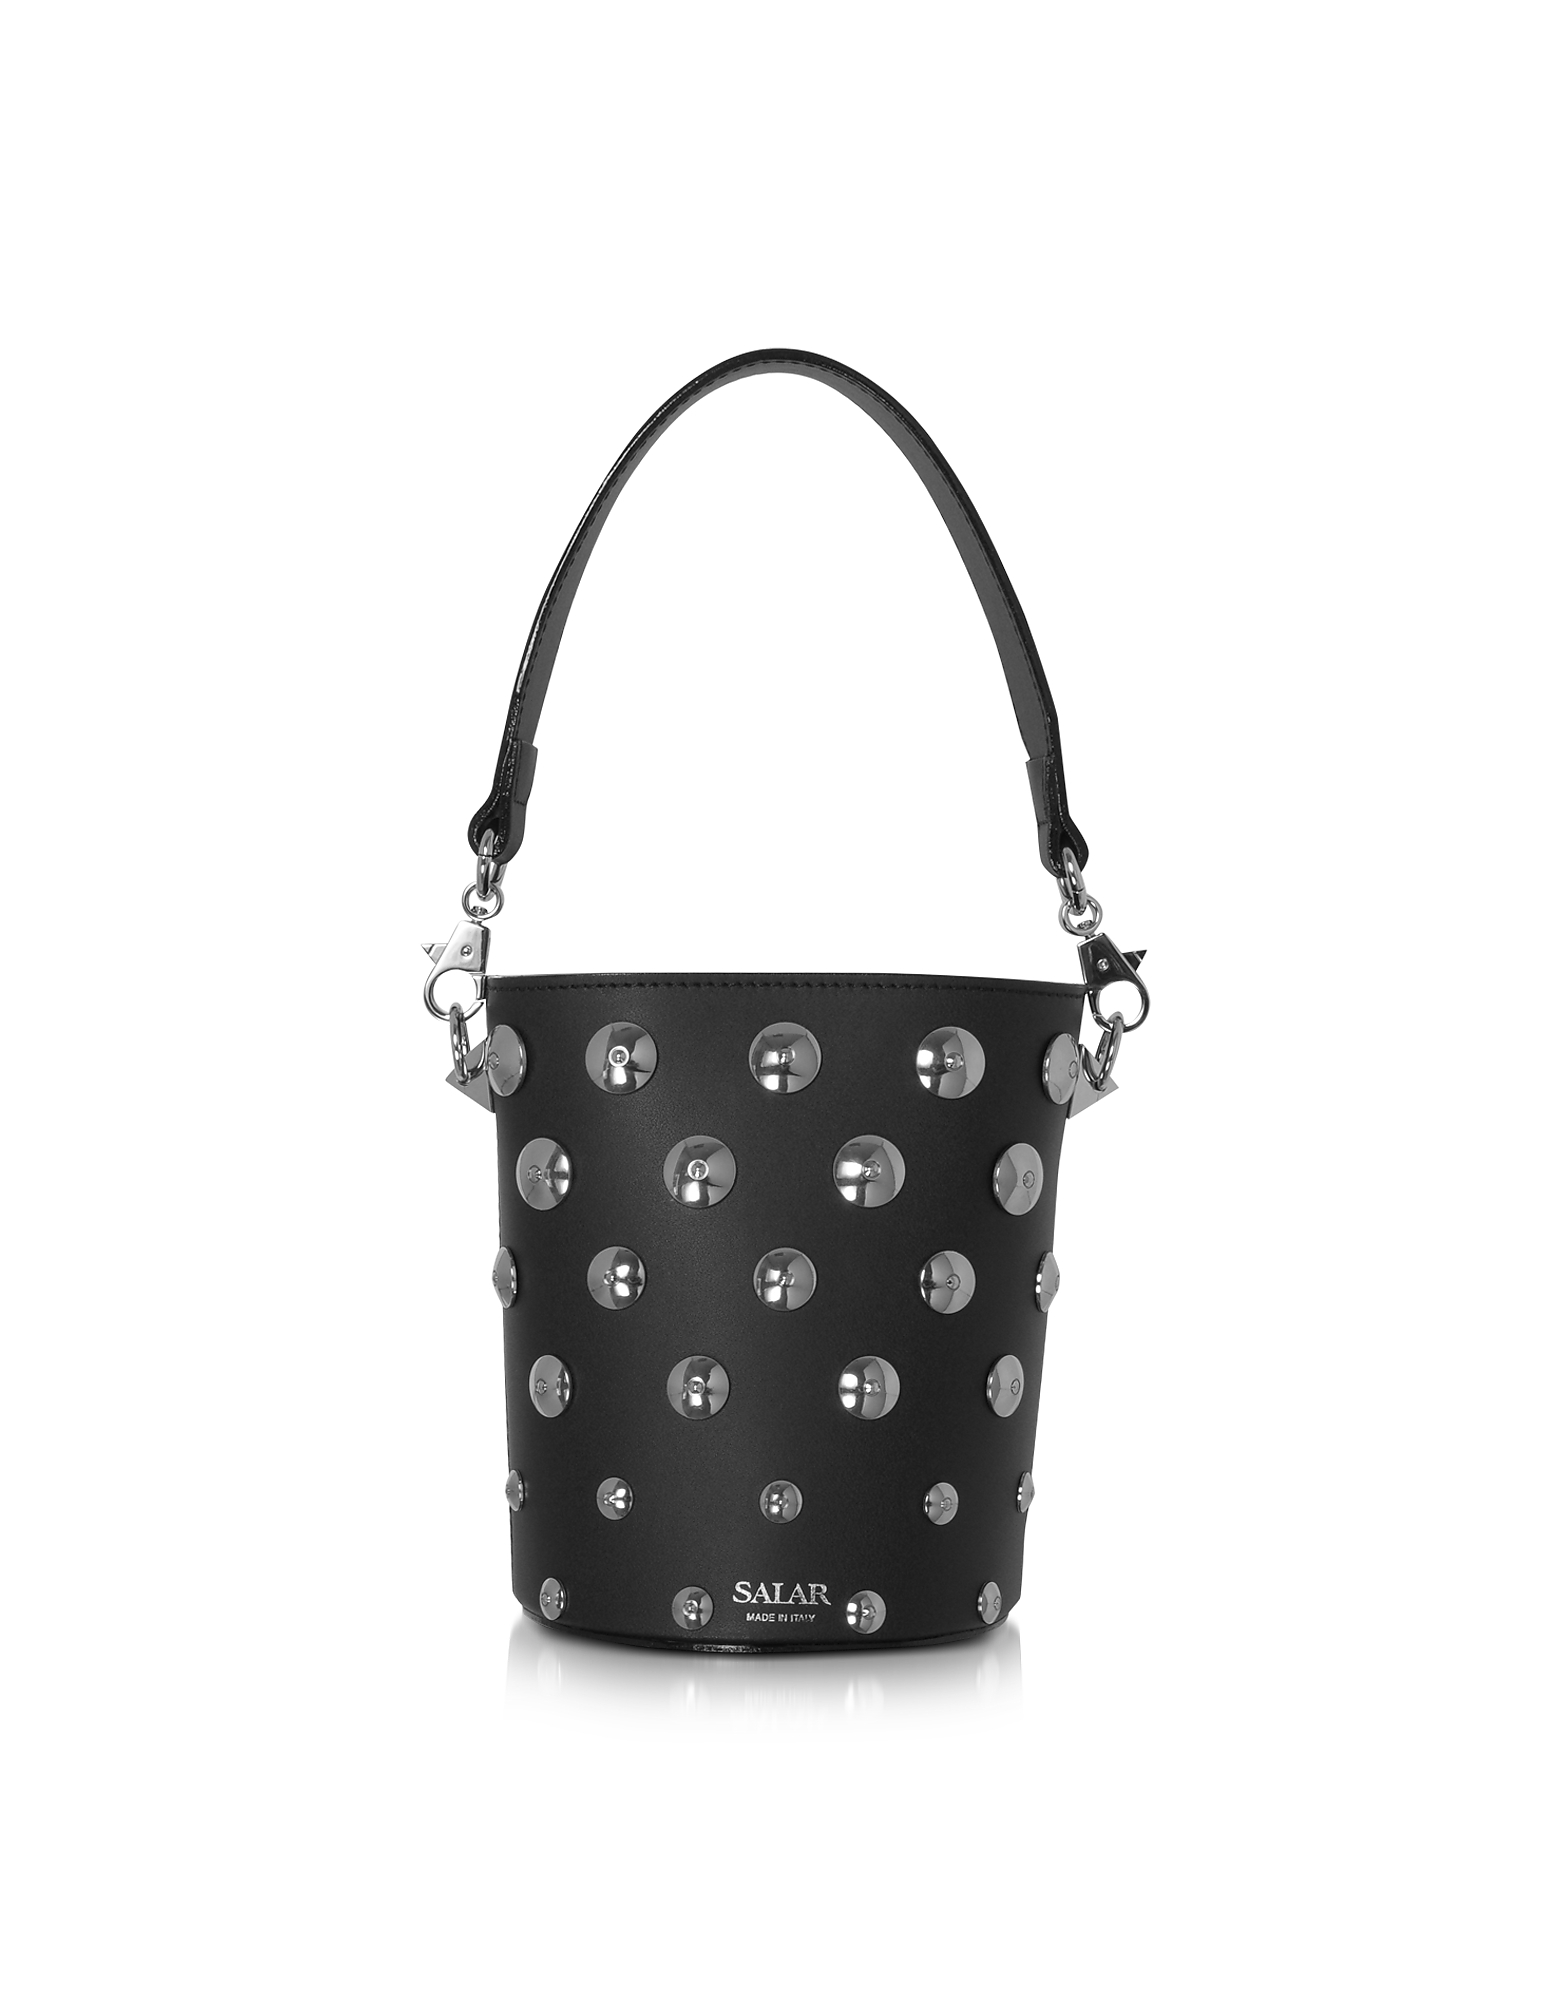 Salar Designer Handbags, Black Celia Moon Bucket Bag